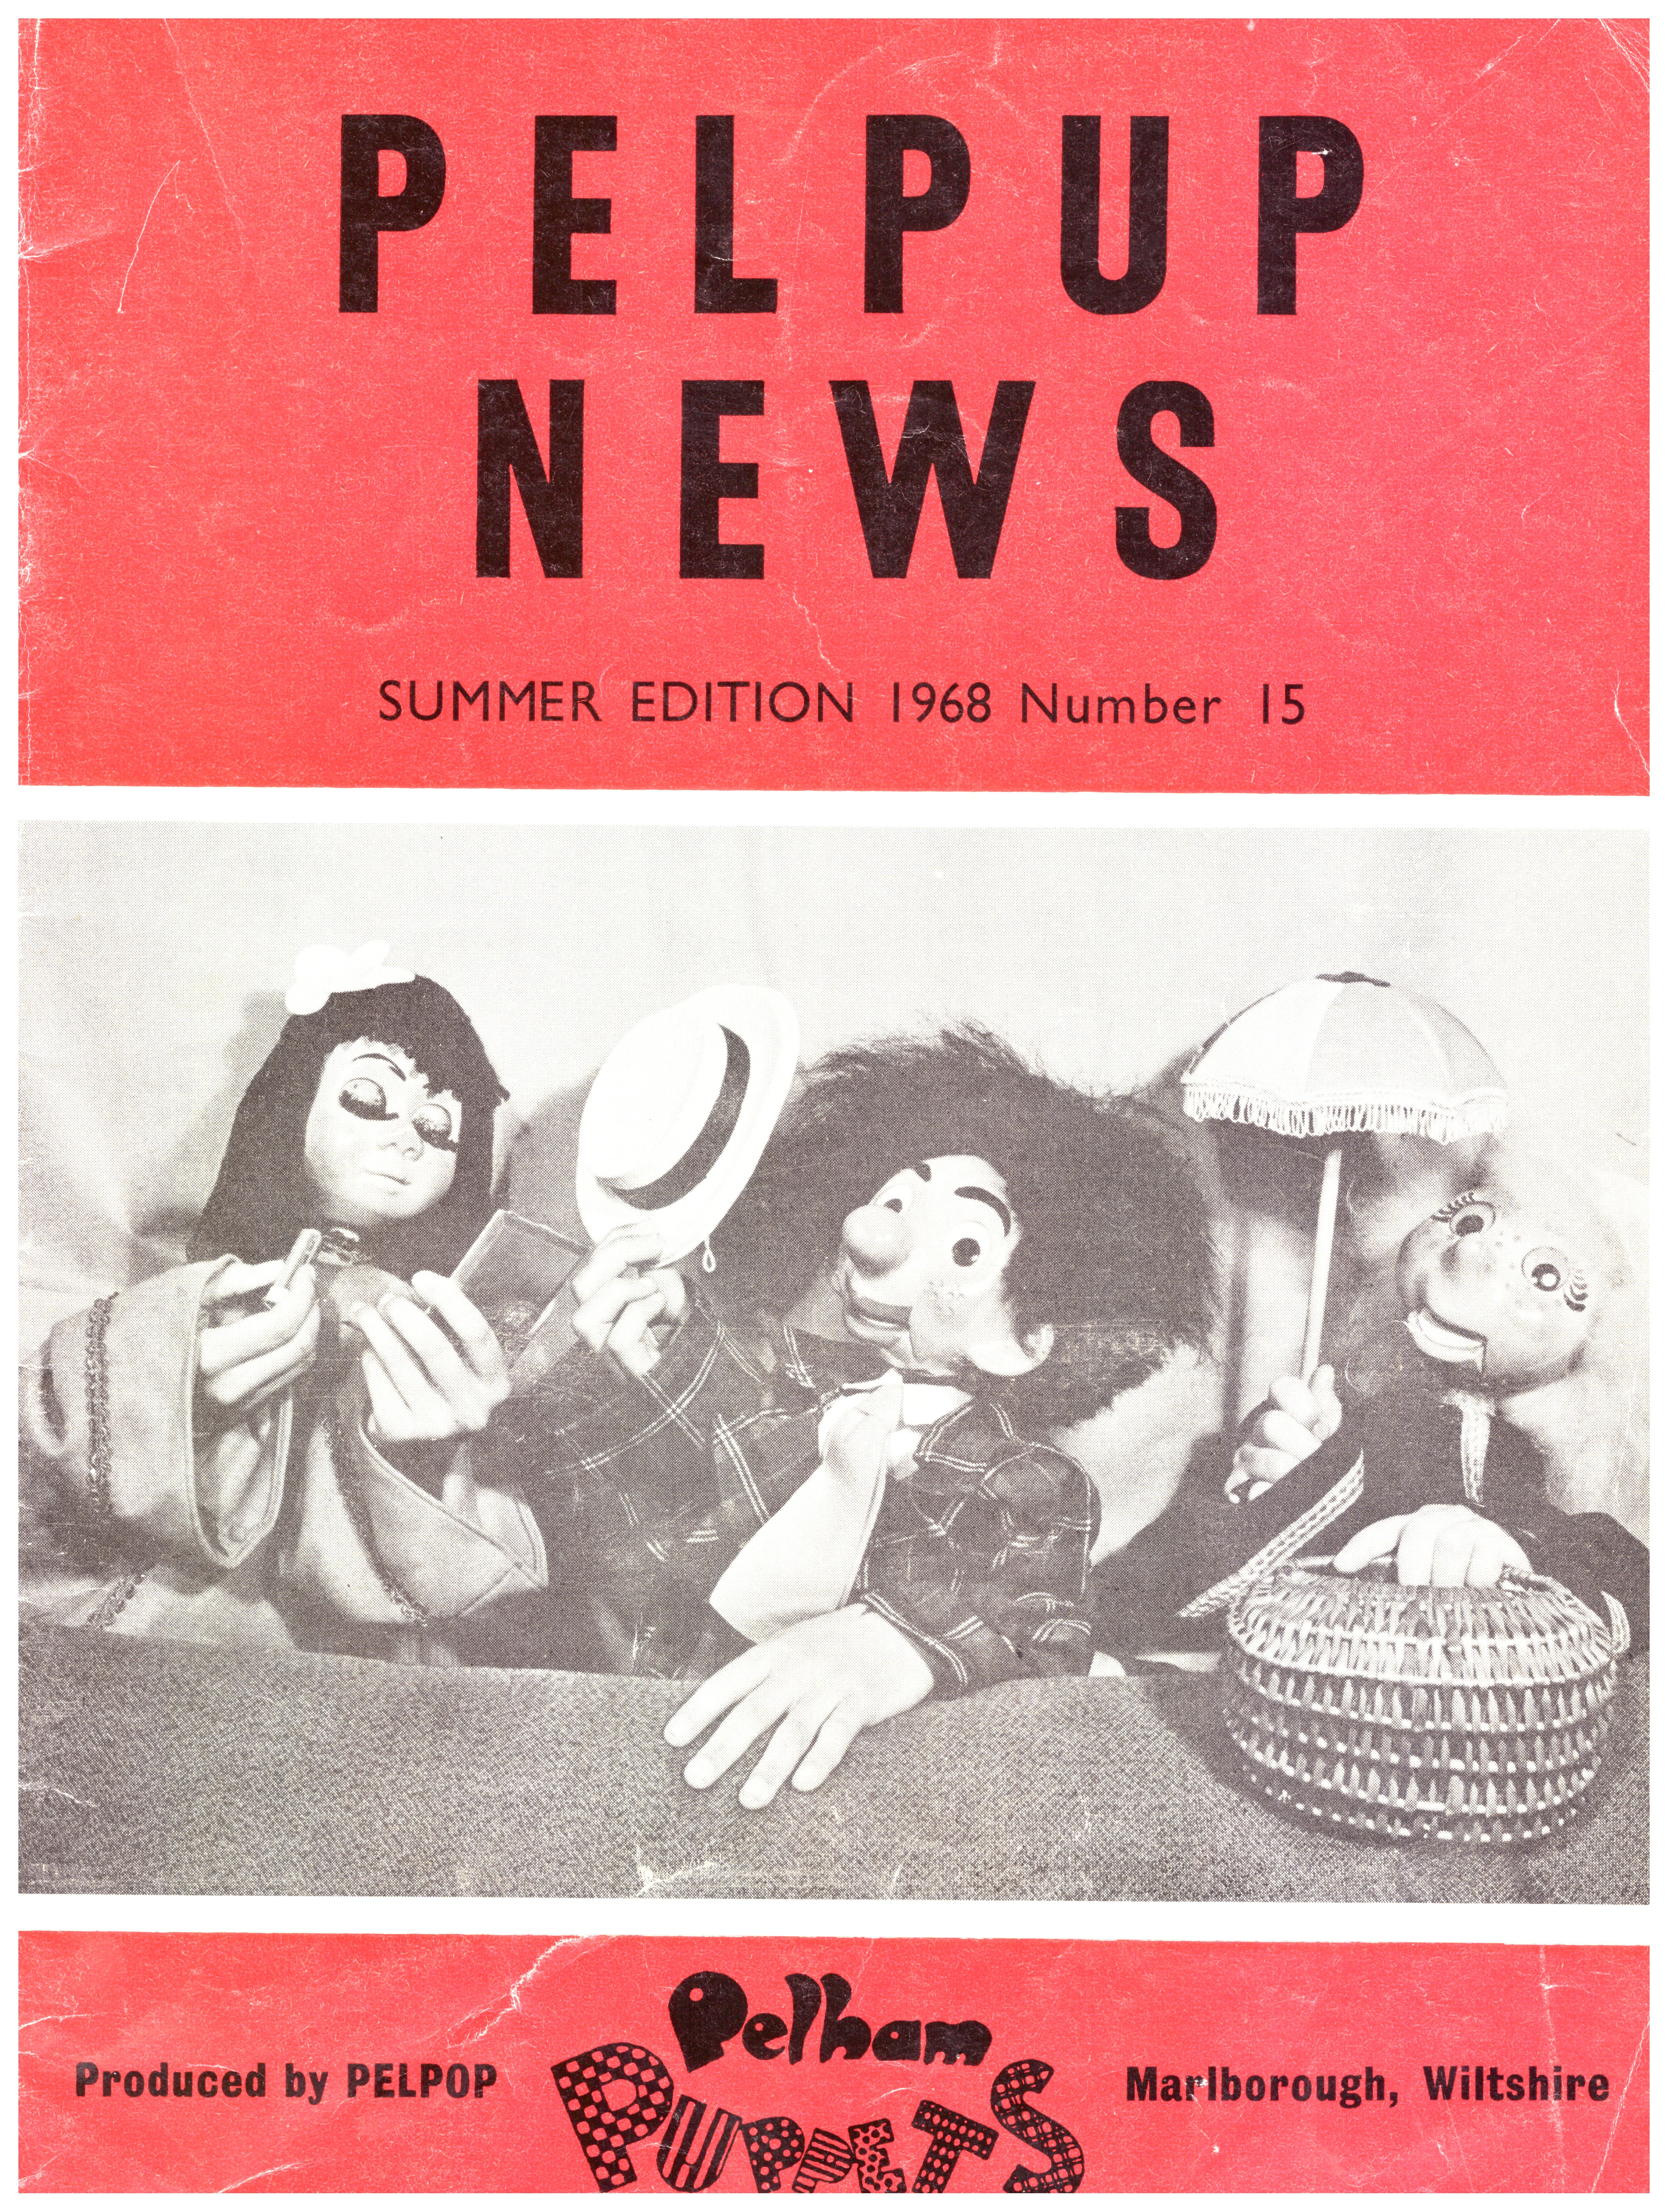 Summer Edition 1968 - Number 15